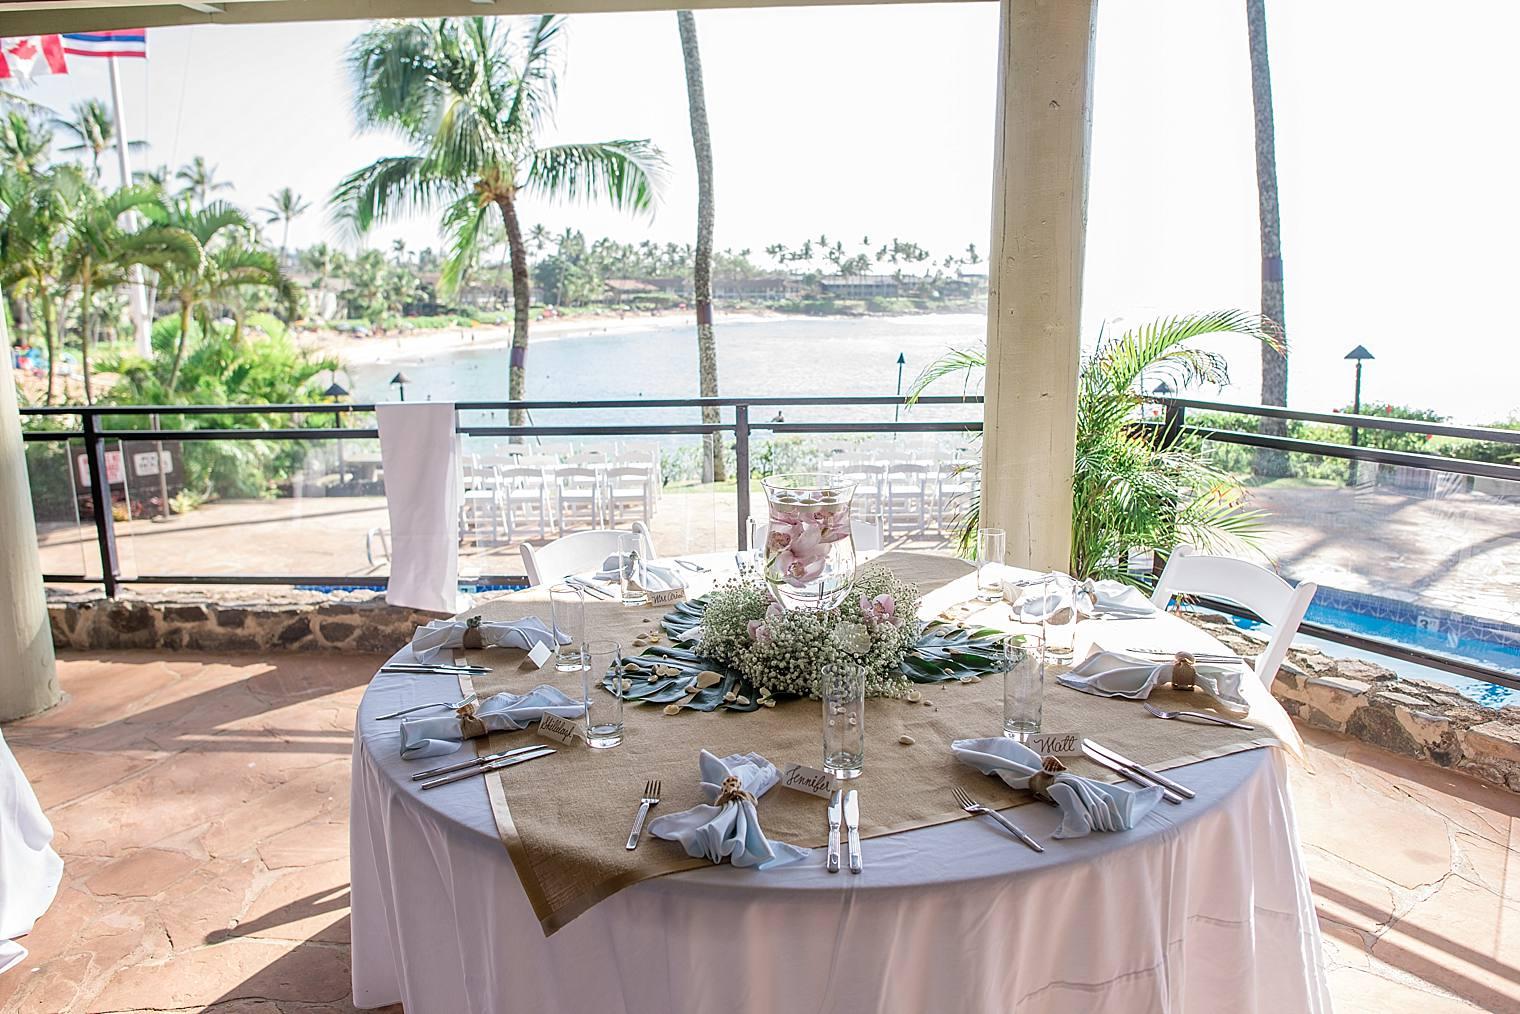 Destination Wedding at Sea House Napili - Maui Wedding Photographer_0005